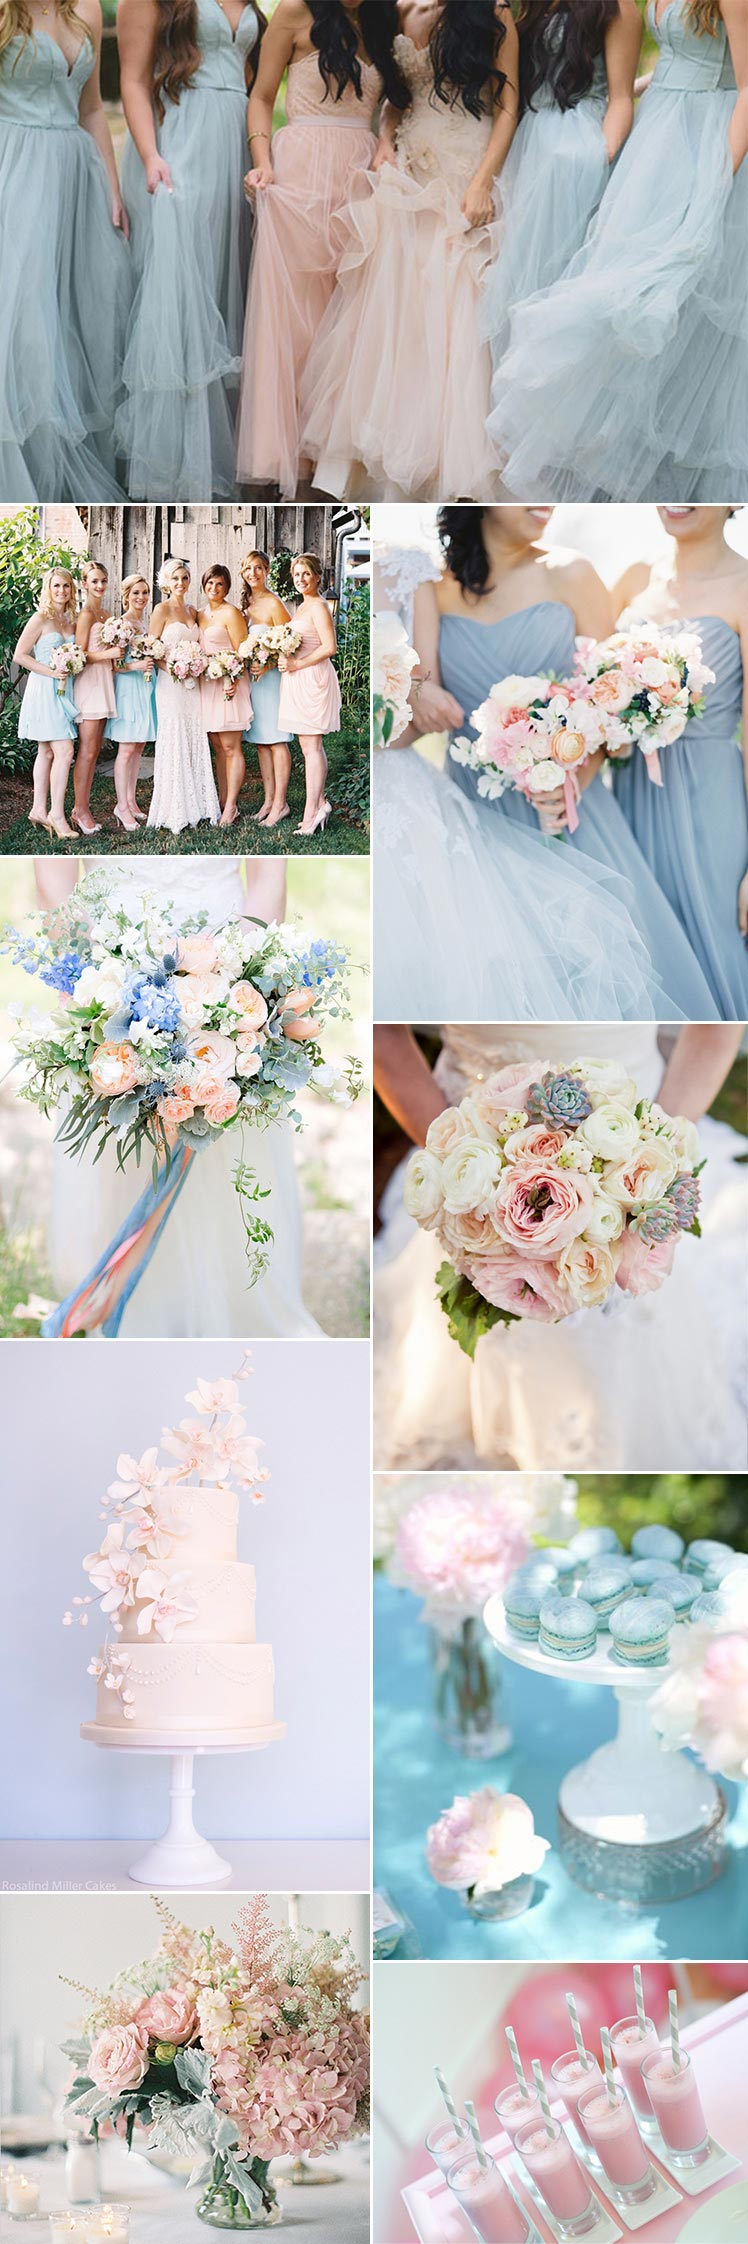 Pink and blue wedding colour scheme inspiration